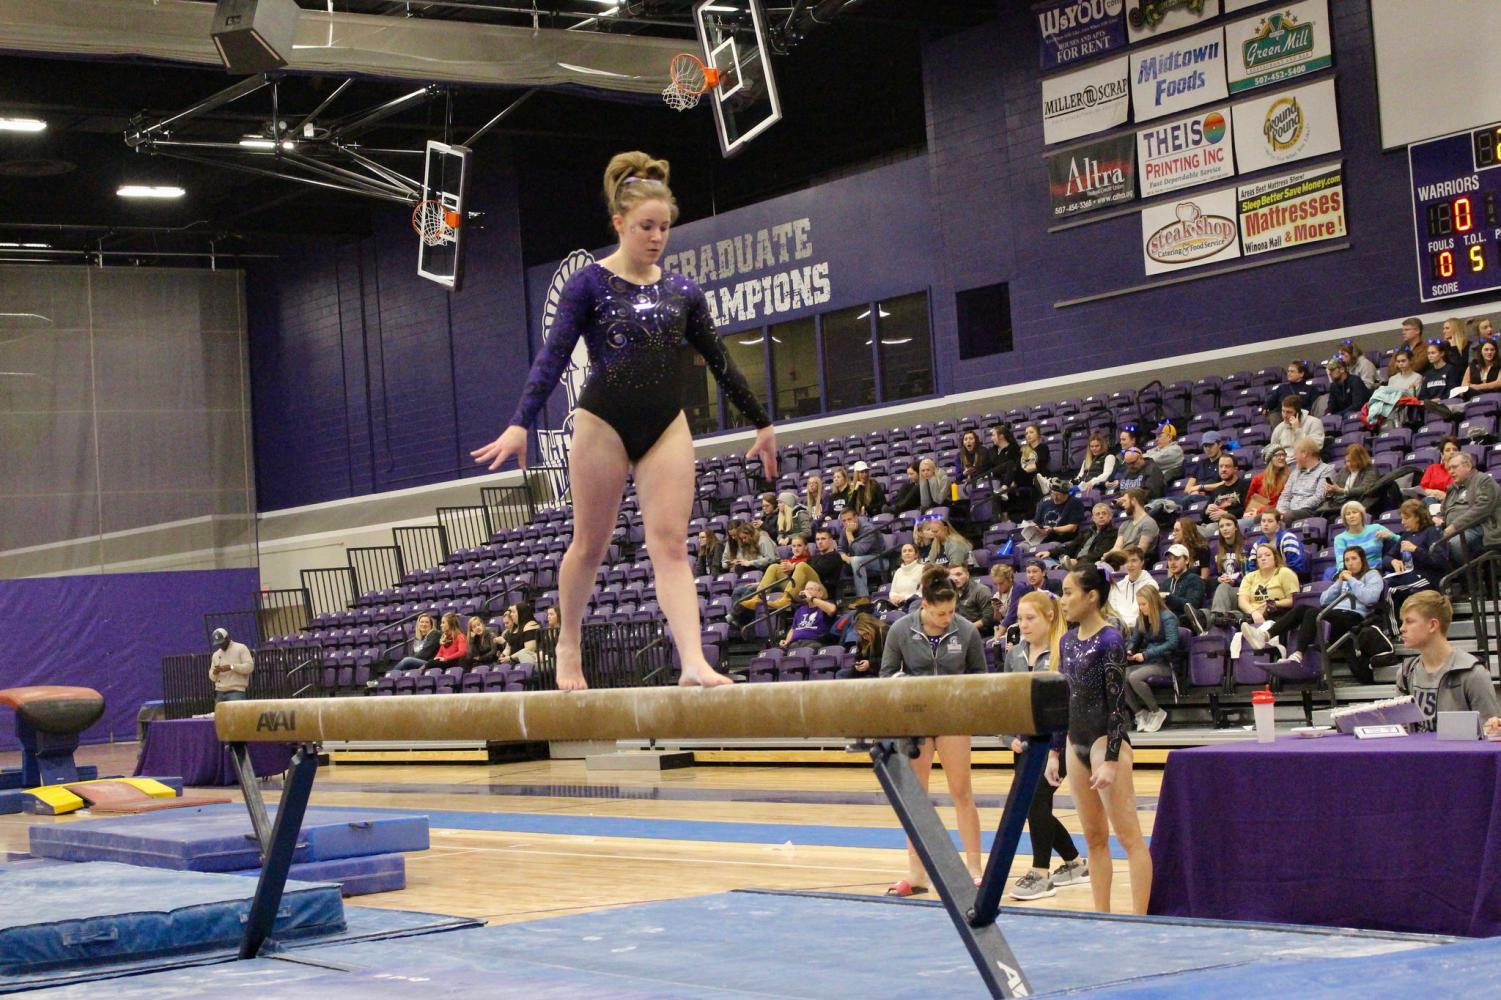 Junior Miranda Saathoff completes a routine on the balance beam in a meets against the University of Wisconsin Stout on Tuesday, Jan 9 in McCowan Gymnasium.